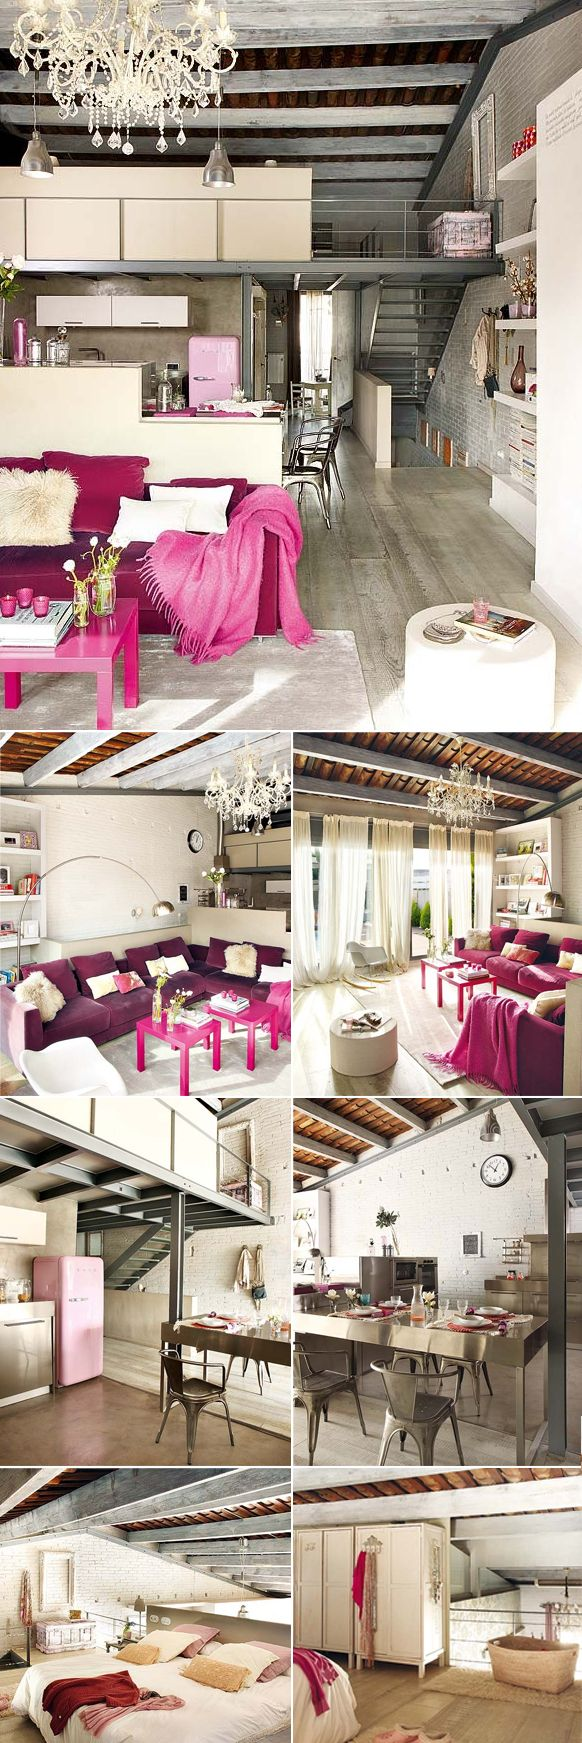 Very cool! i've always wanted a loft apt! The color is great!